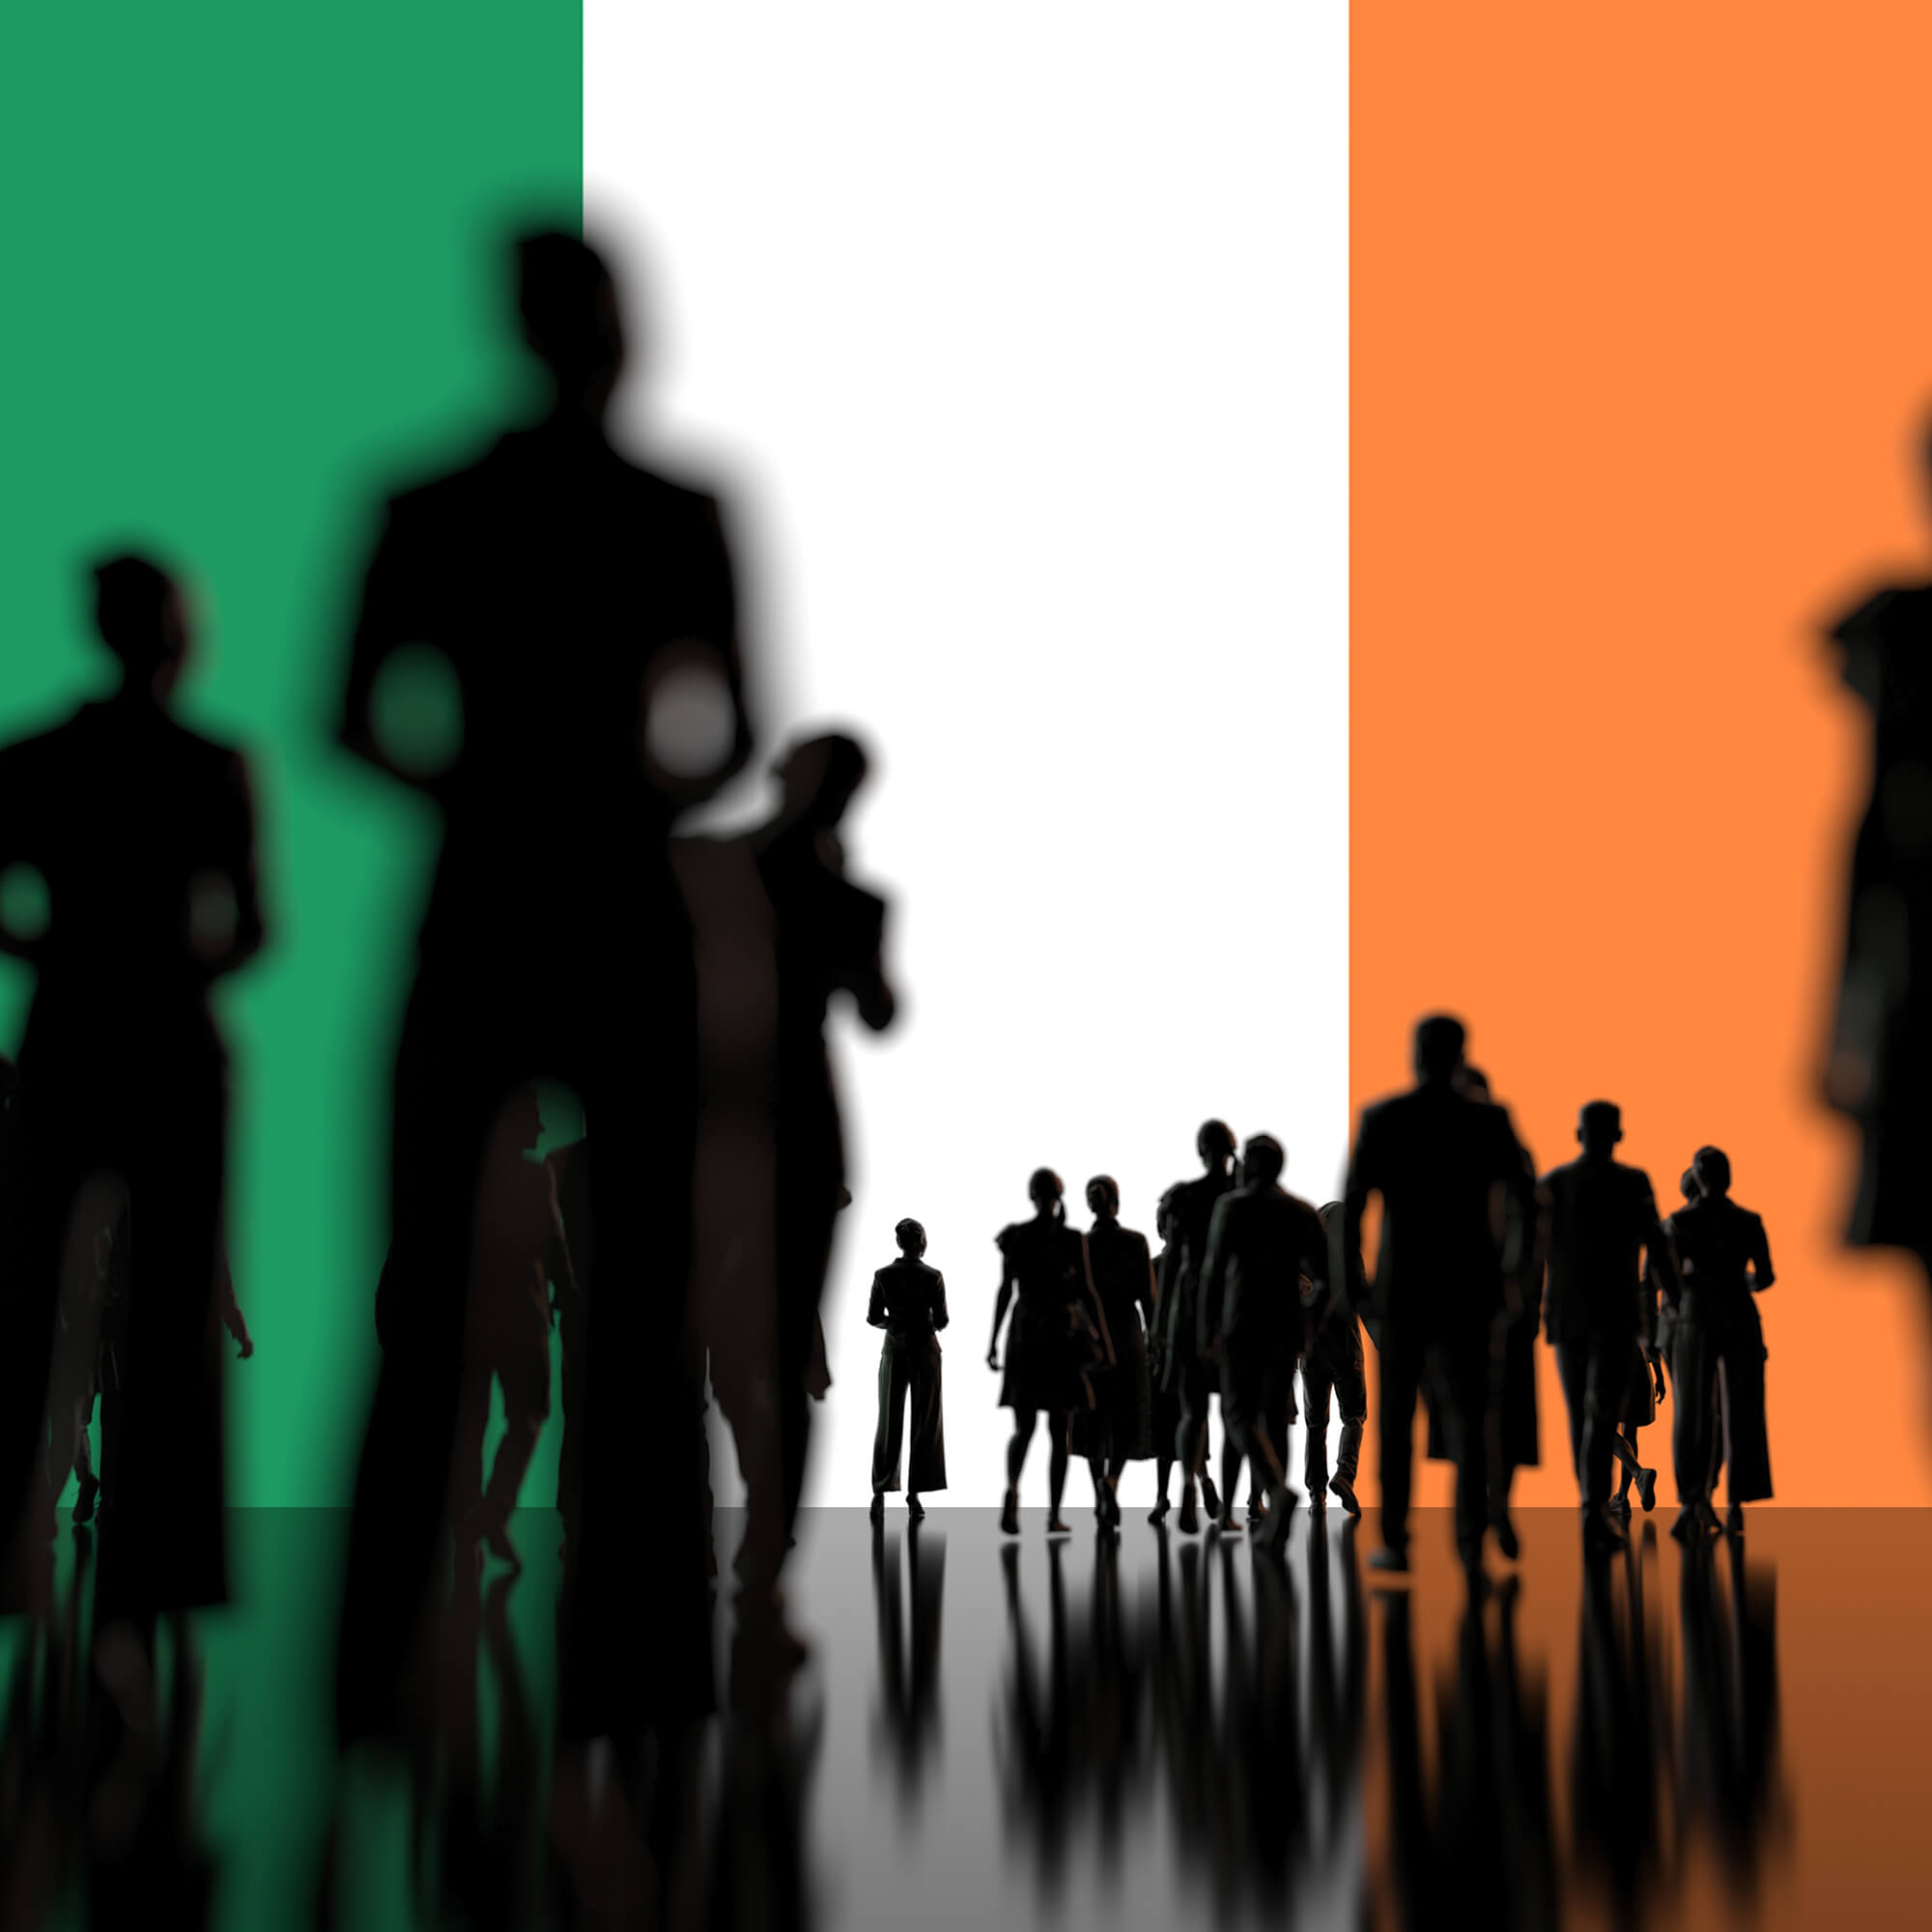 silhouettes of people against an Irish flag